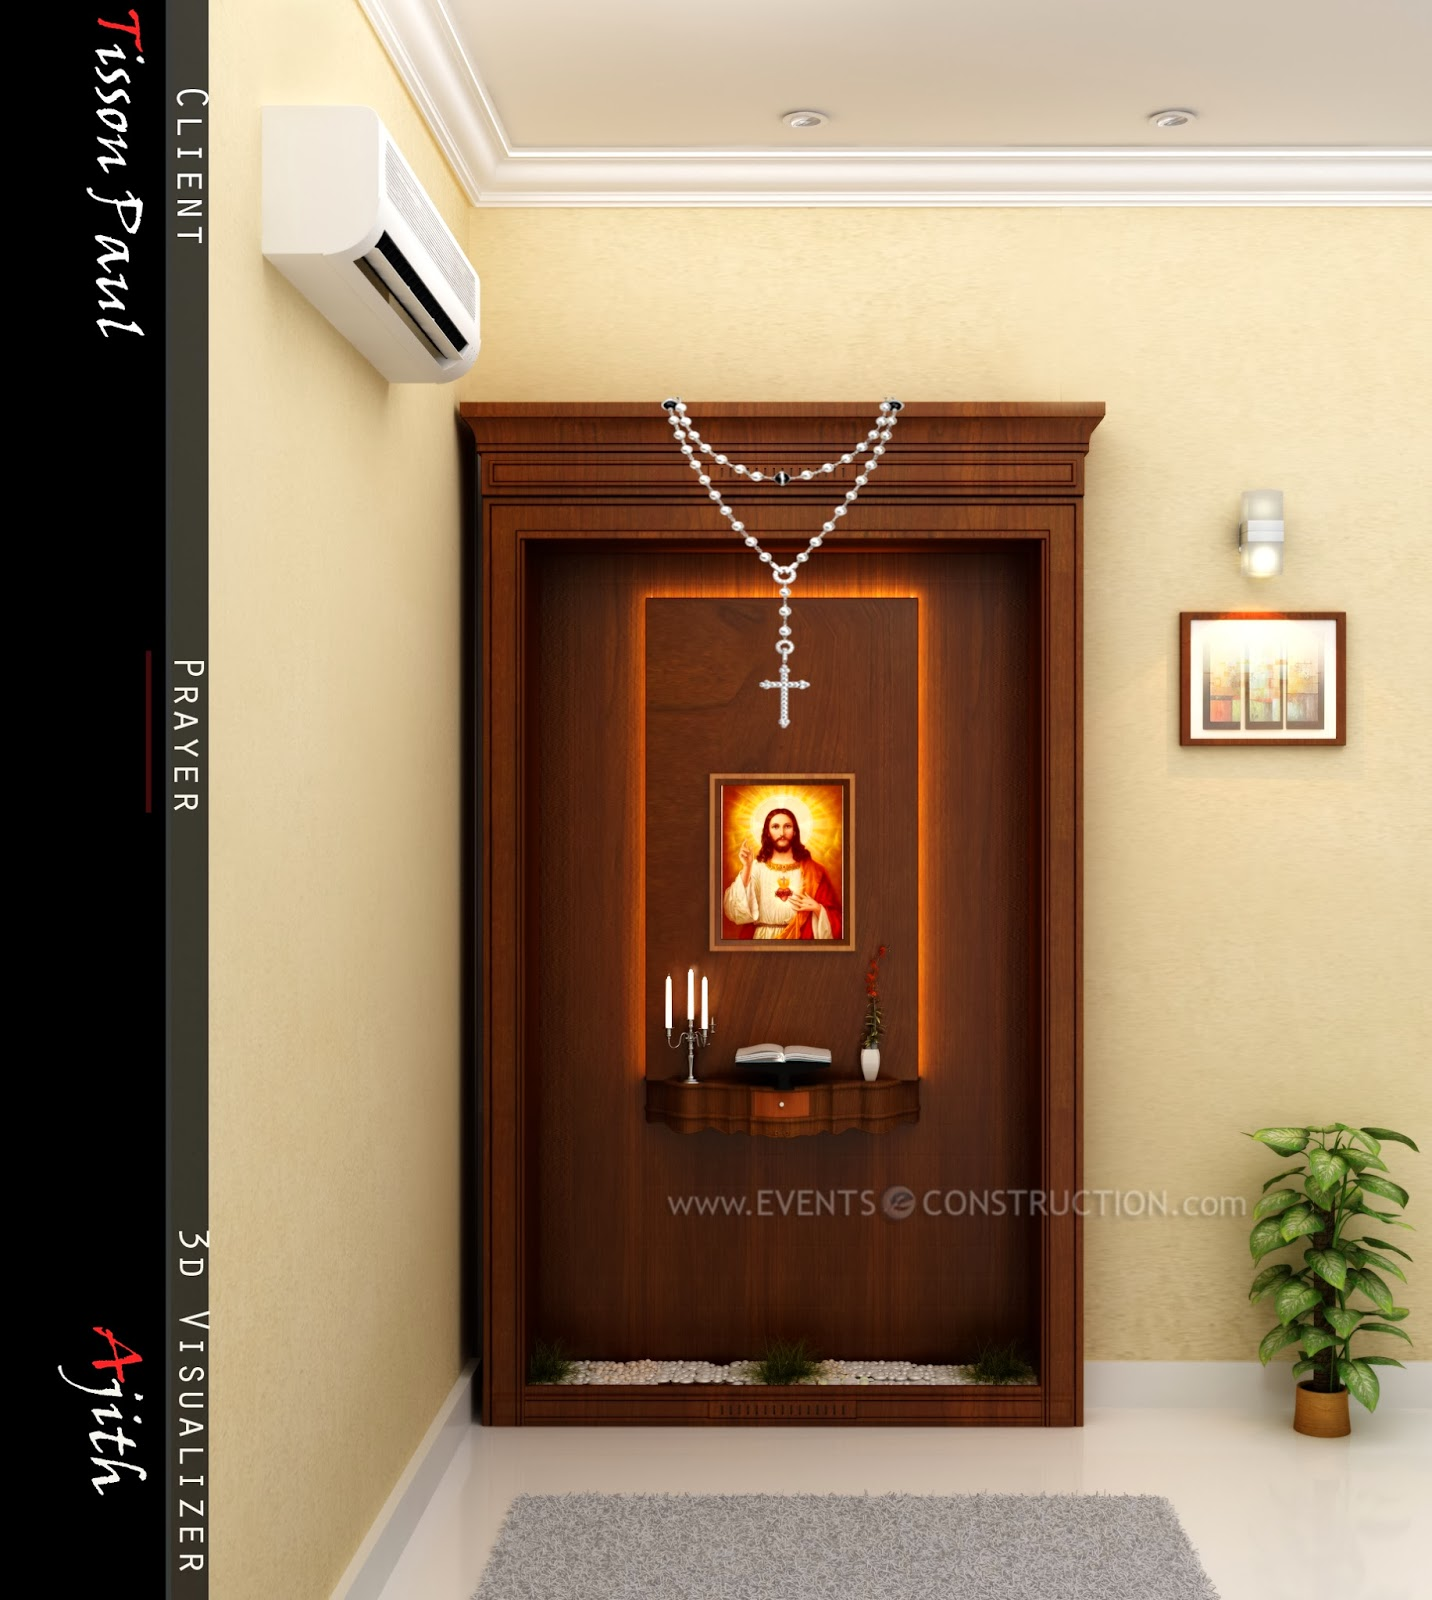 Styles Of Homes In Our Area: Evens Construction Pvt Ltd: Prayer Area